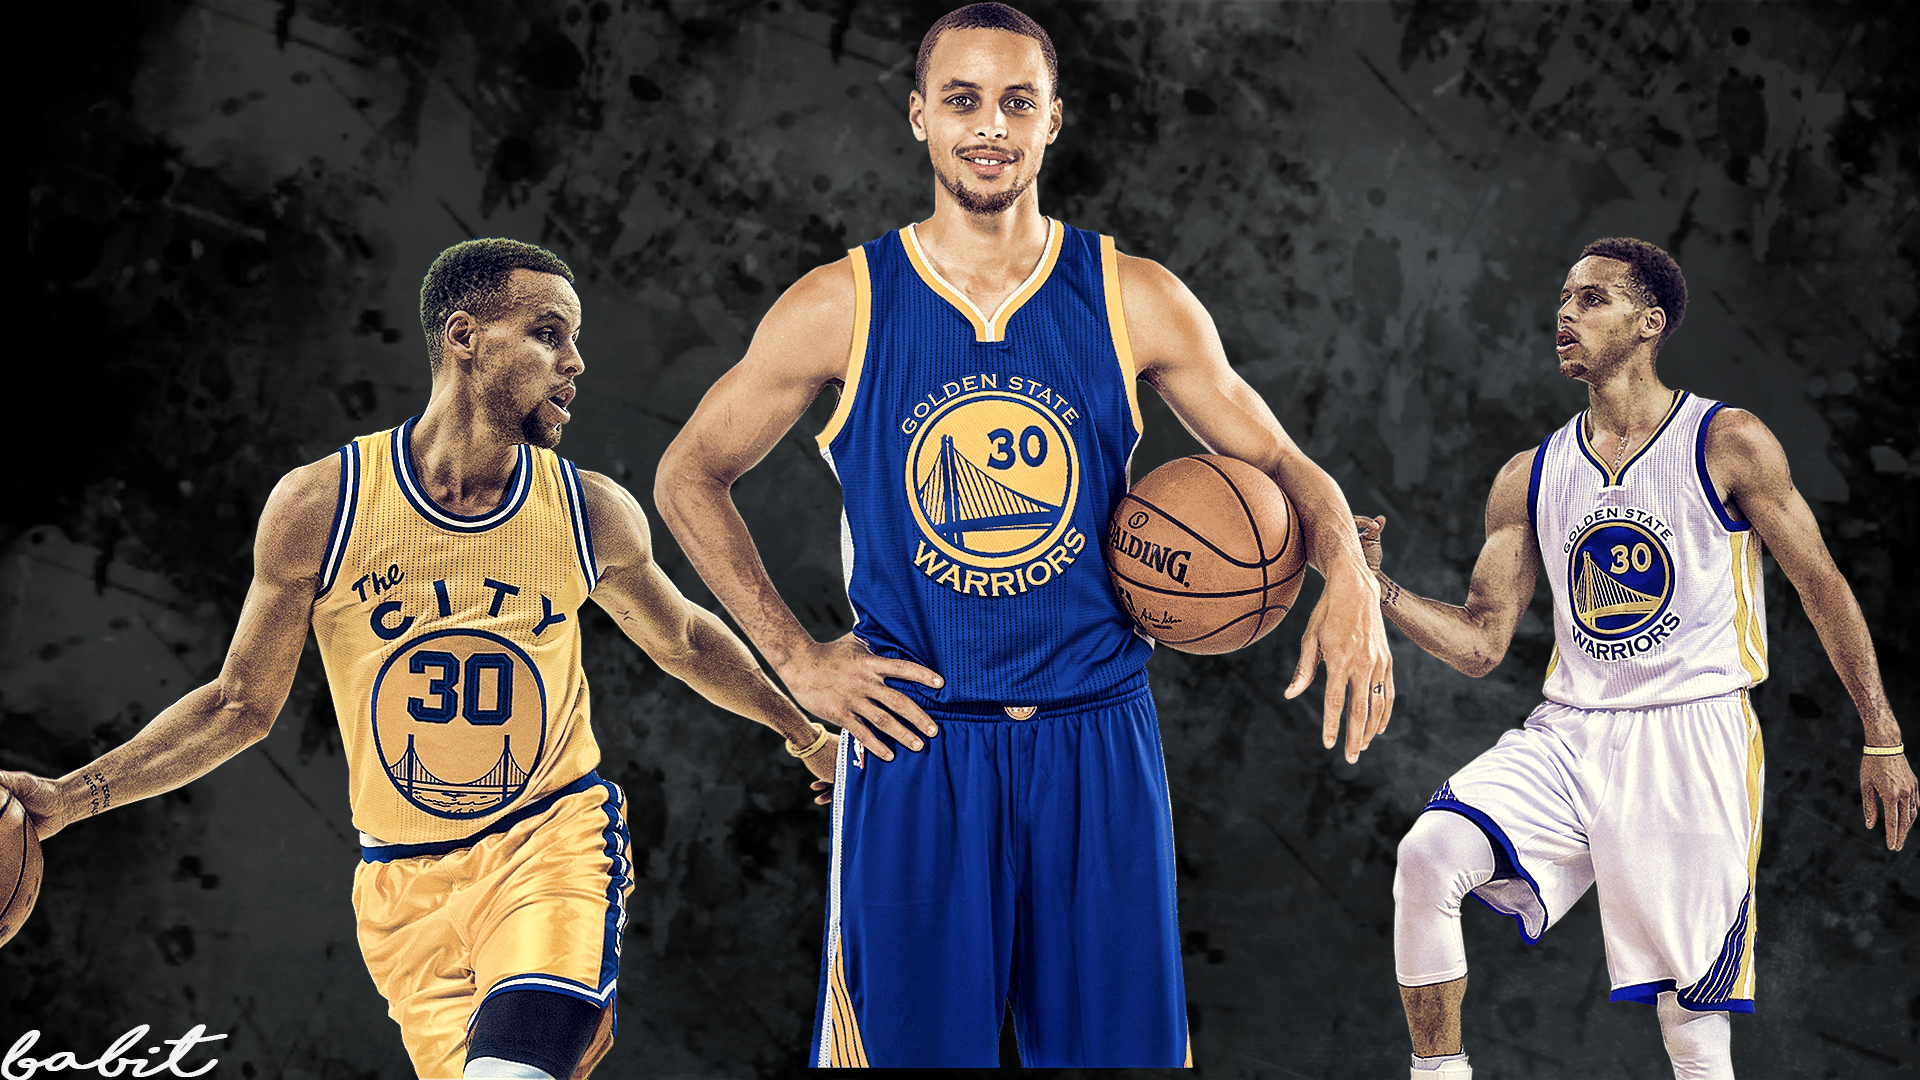 Stephen curry wallpaper hd 2017